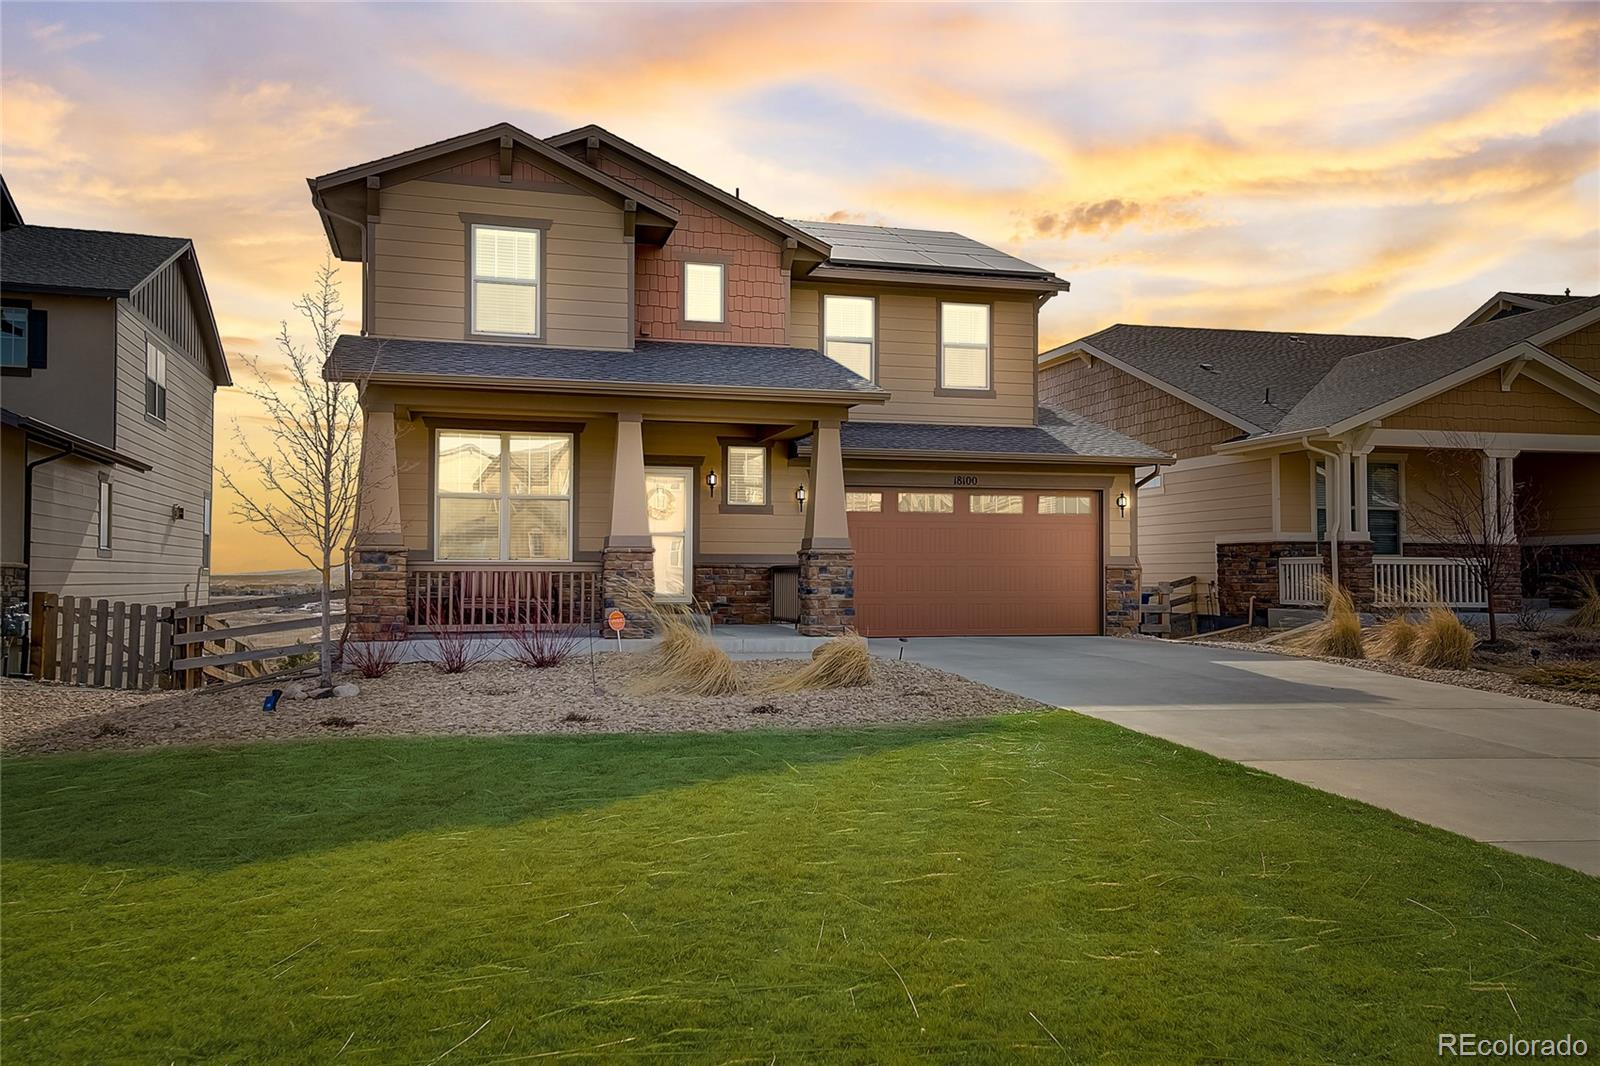 MLS# 7832624 - 1 - 18100 W 85th Drive, Arvada, CO 80007